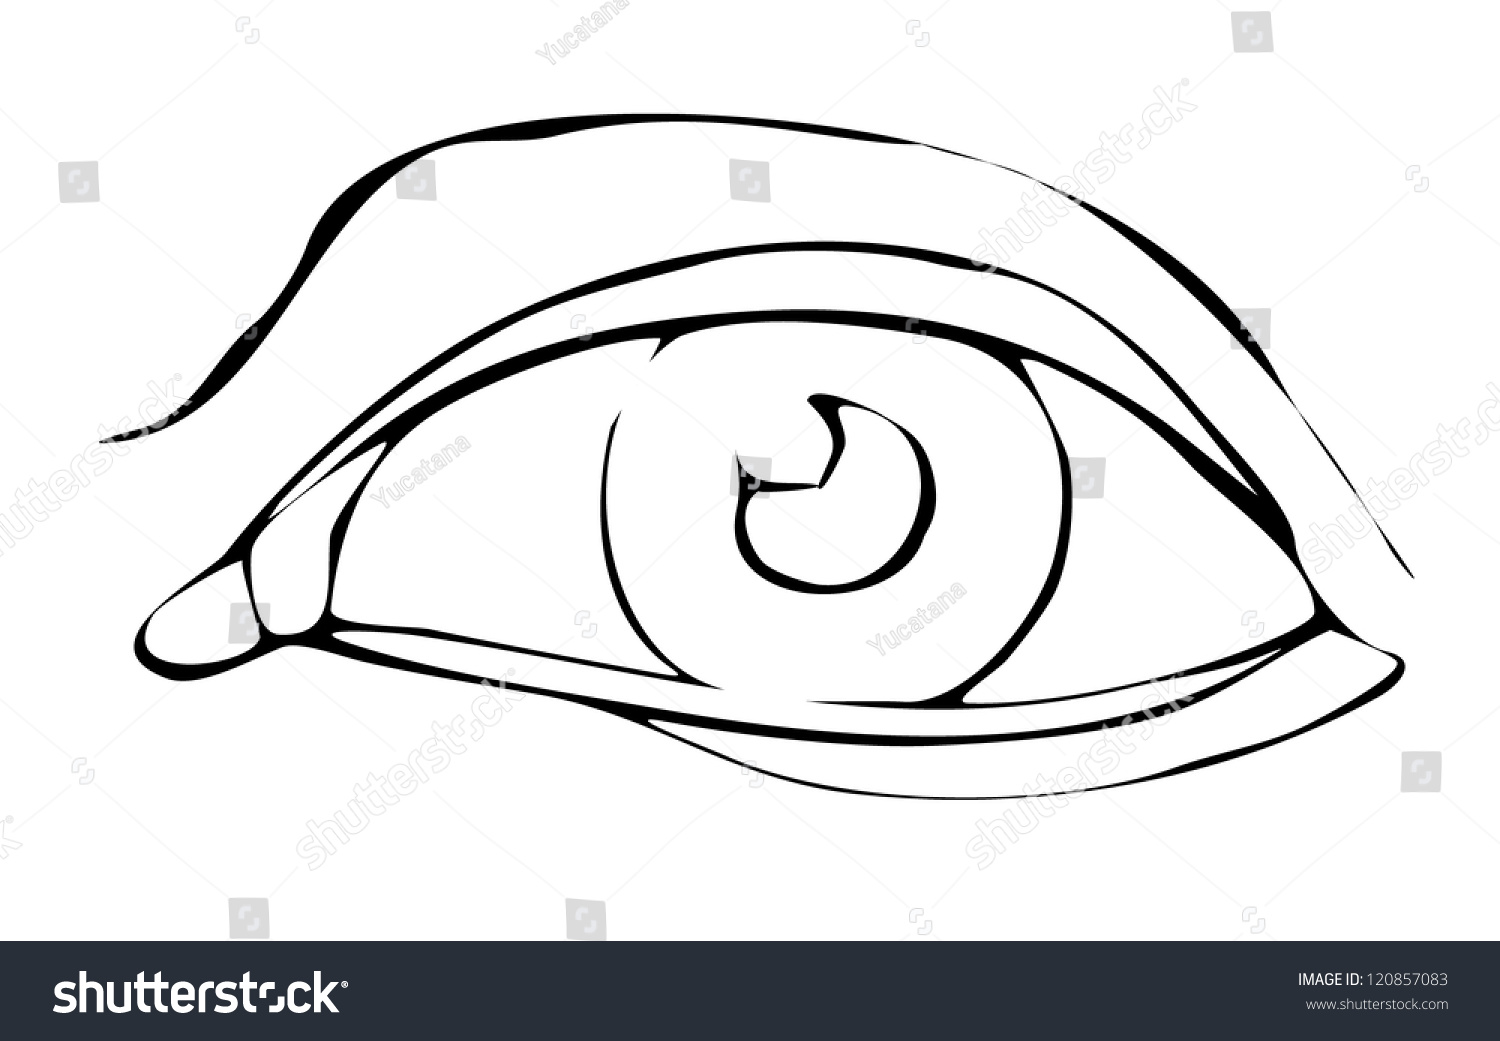 Figure Structure Eye Outline Stock Vector 120857083 - Shutterstock